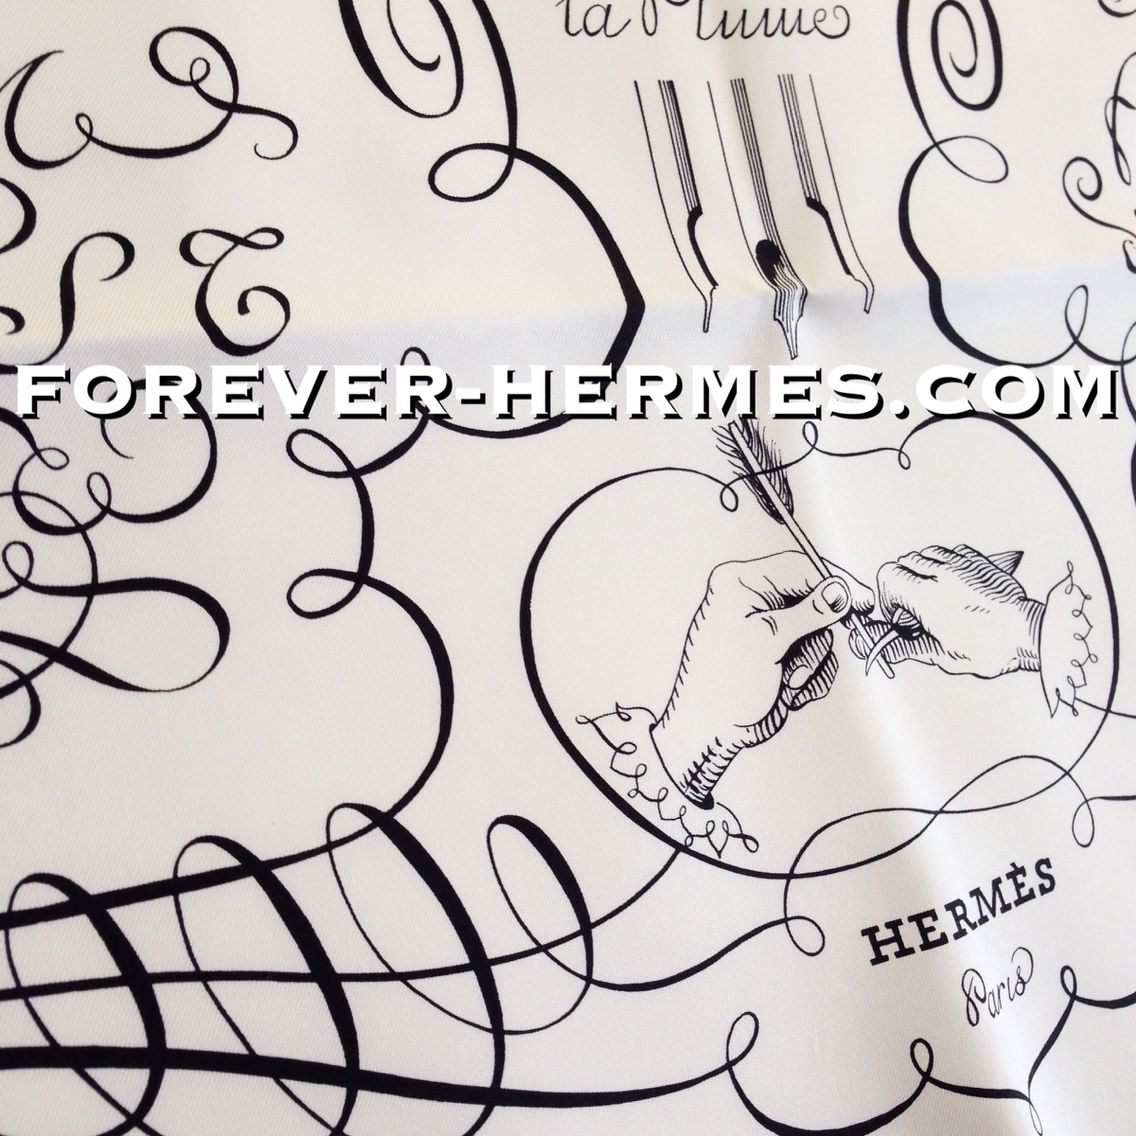 In our store http://forever-hermes.com #ForeverHermes this iconic Hermes Paris couture silk chiffon scarf titled L'Art D'Ecrire designed by Maurice Tranchant featuring the classic calligraphy styles, fonts, as well as a depiction of the correct body position that a #lady or #dapper #gentleman is supposed to keep while writing! #mensnecktie #mensfashion #menswear #mensstyle #womenswear #womensstyle #alphabet #antique #HermesParis #HermesCarre #Hermes #Paris